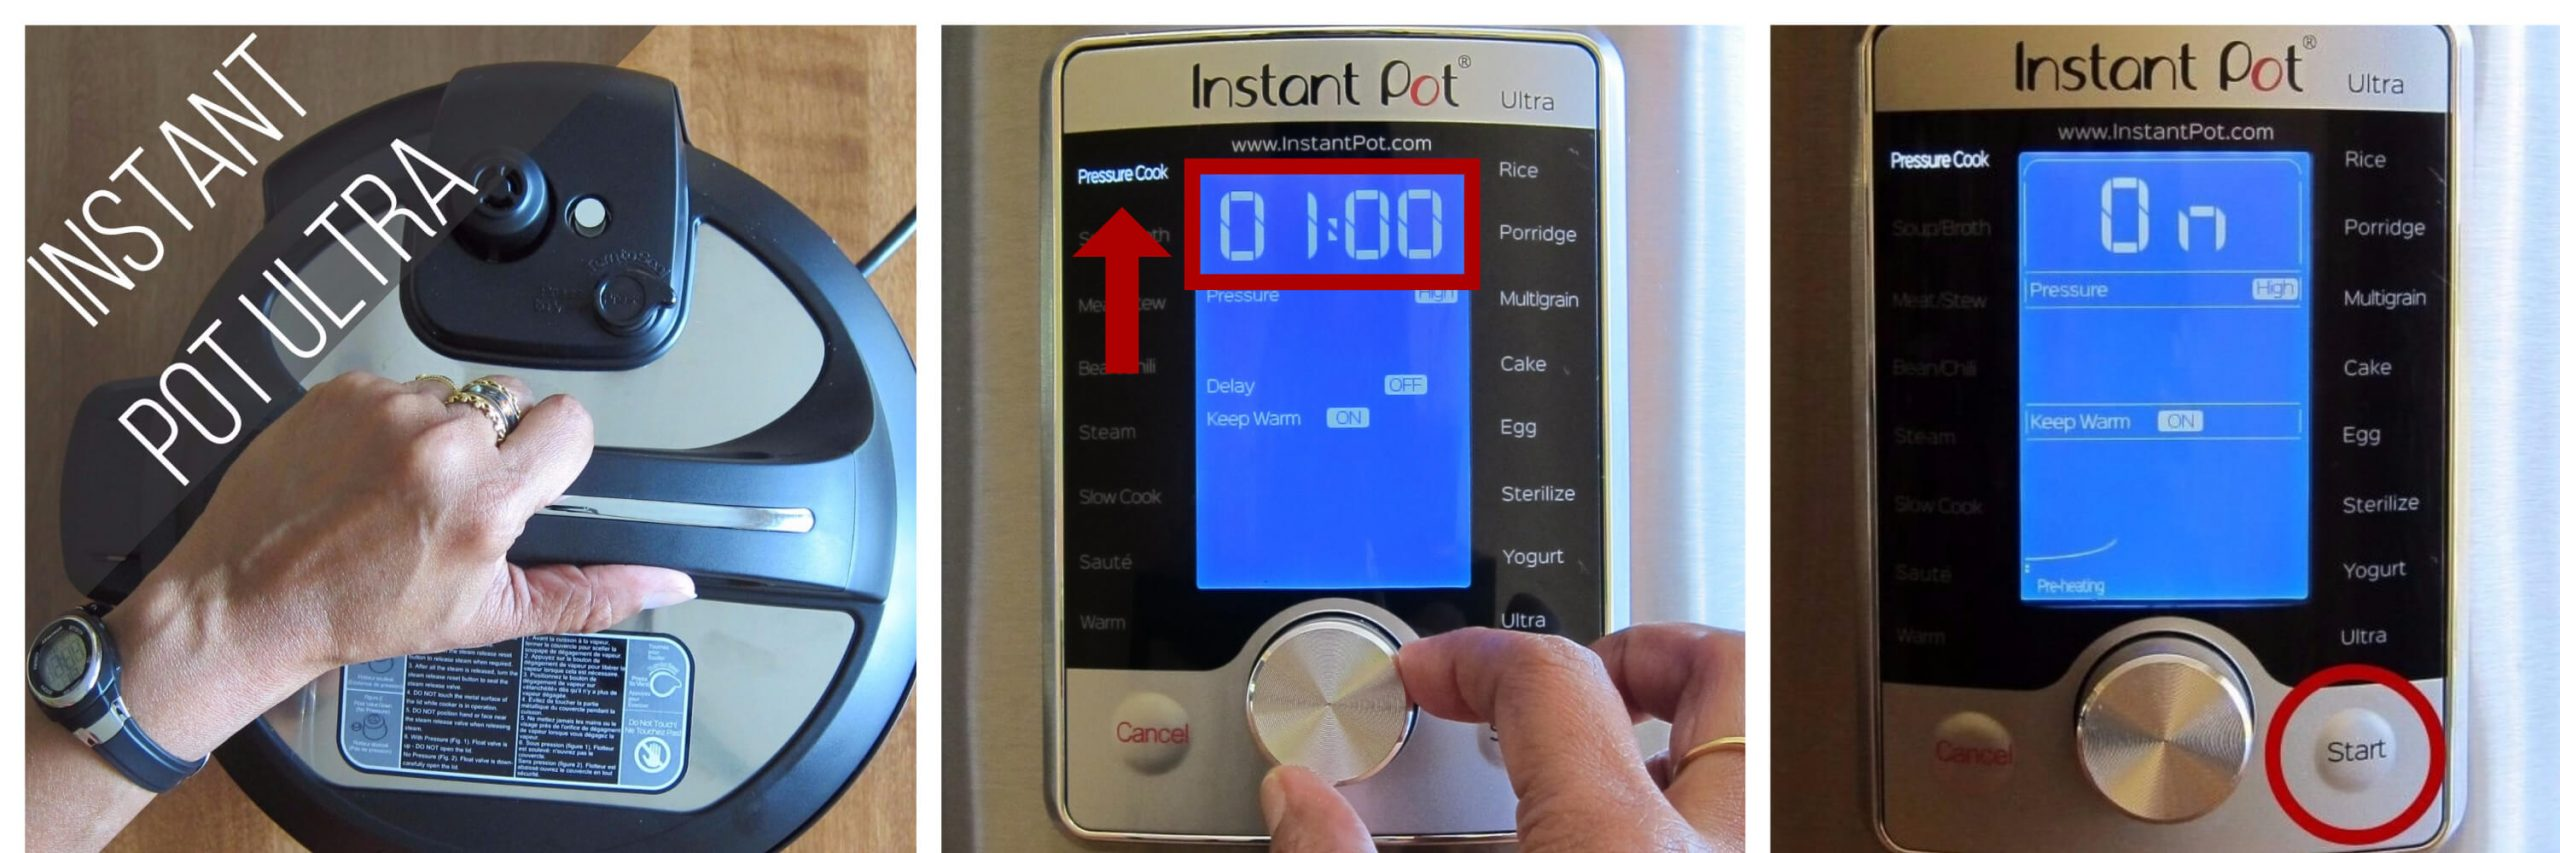 Instant Pot Ultra pressure cook 60 minutes collage - open lid, select pressure cook and set time to 1:00, display says on - Paint the Kitchen Red